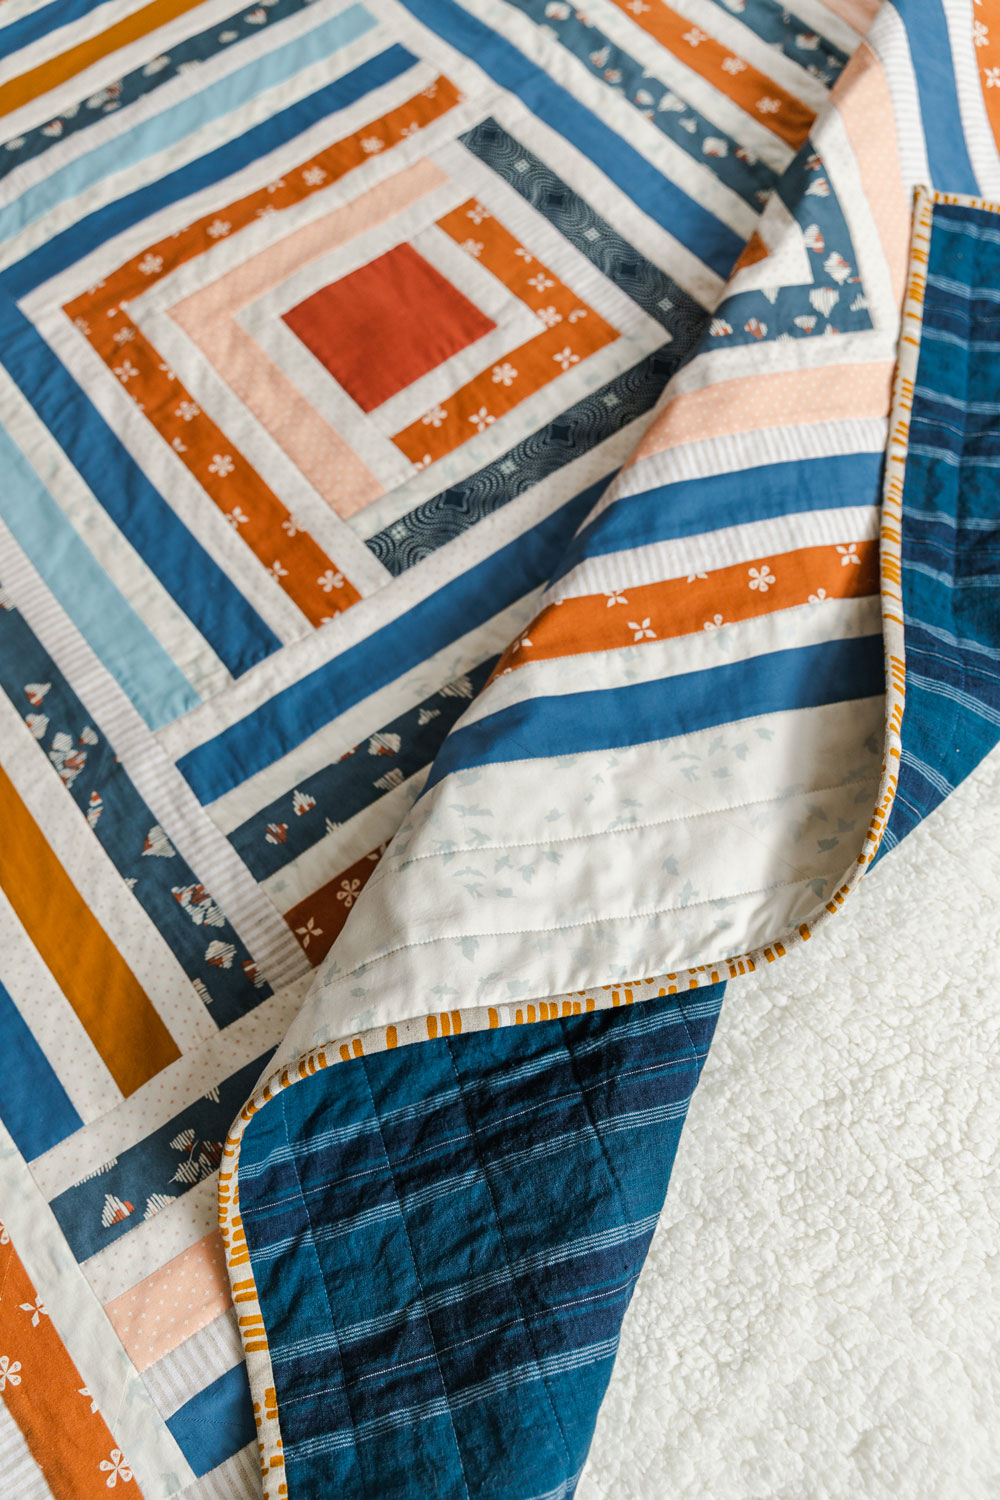 Sew a scrappy modern quilt with the Campfire quilt pattern. Based on the traditional log cabin quilt pattern, use long strips of fabric and scraps! suzyquilts.com #logcabinquilt #modernquilt